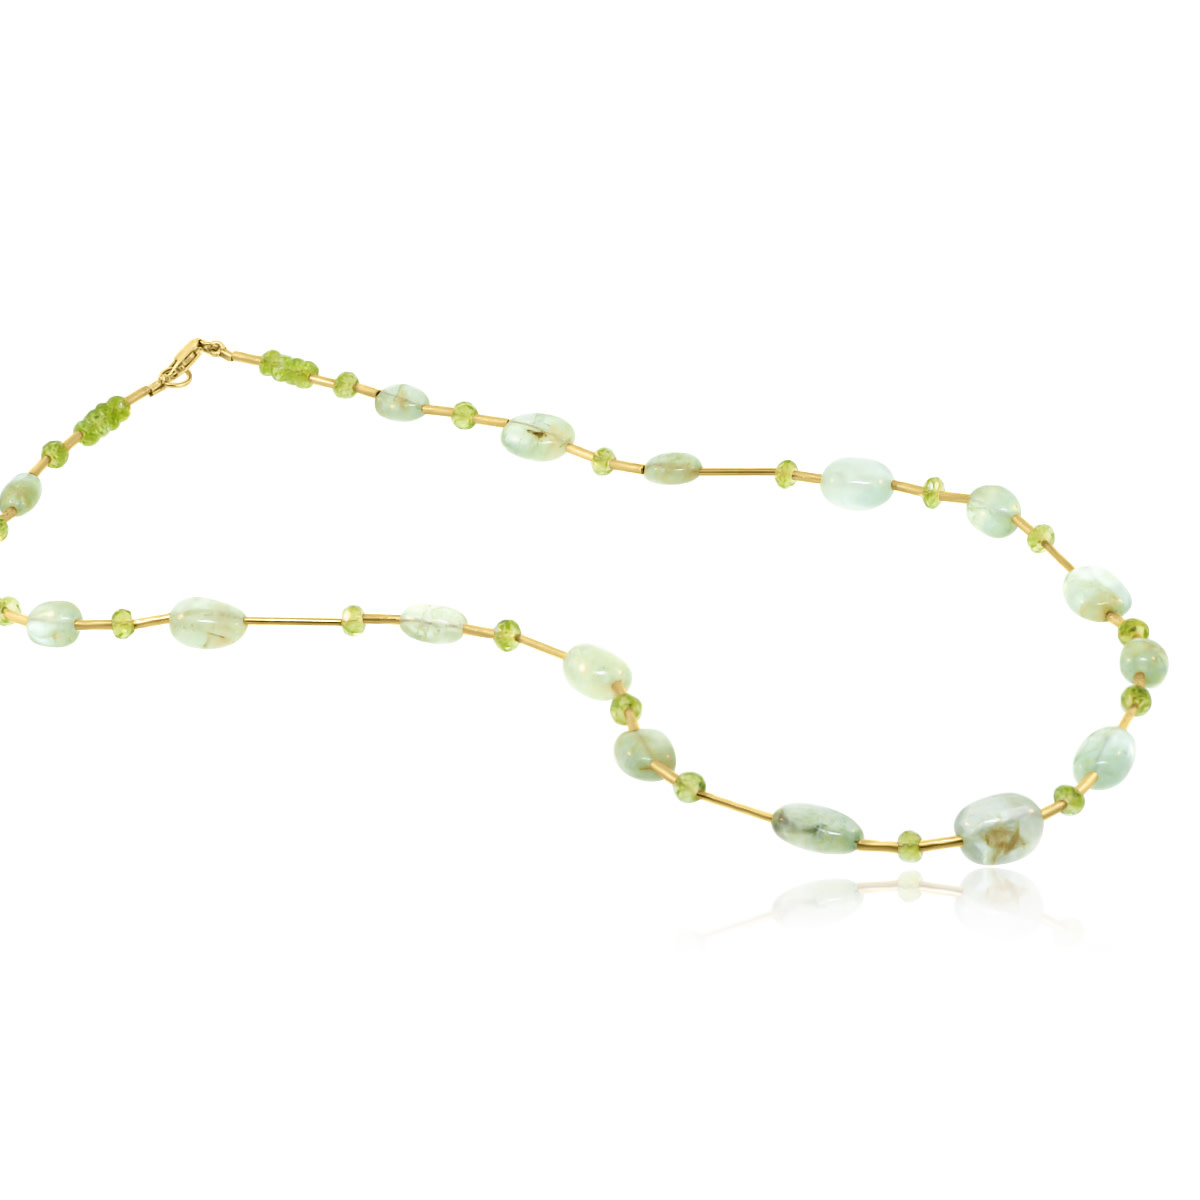 Trabert Goldsmiths Prehnite and Peridot Beaded Necklace